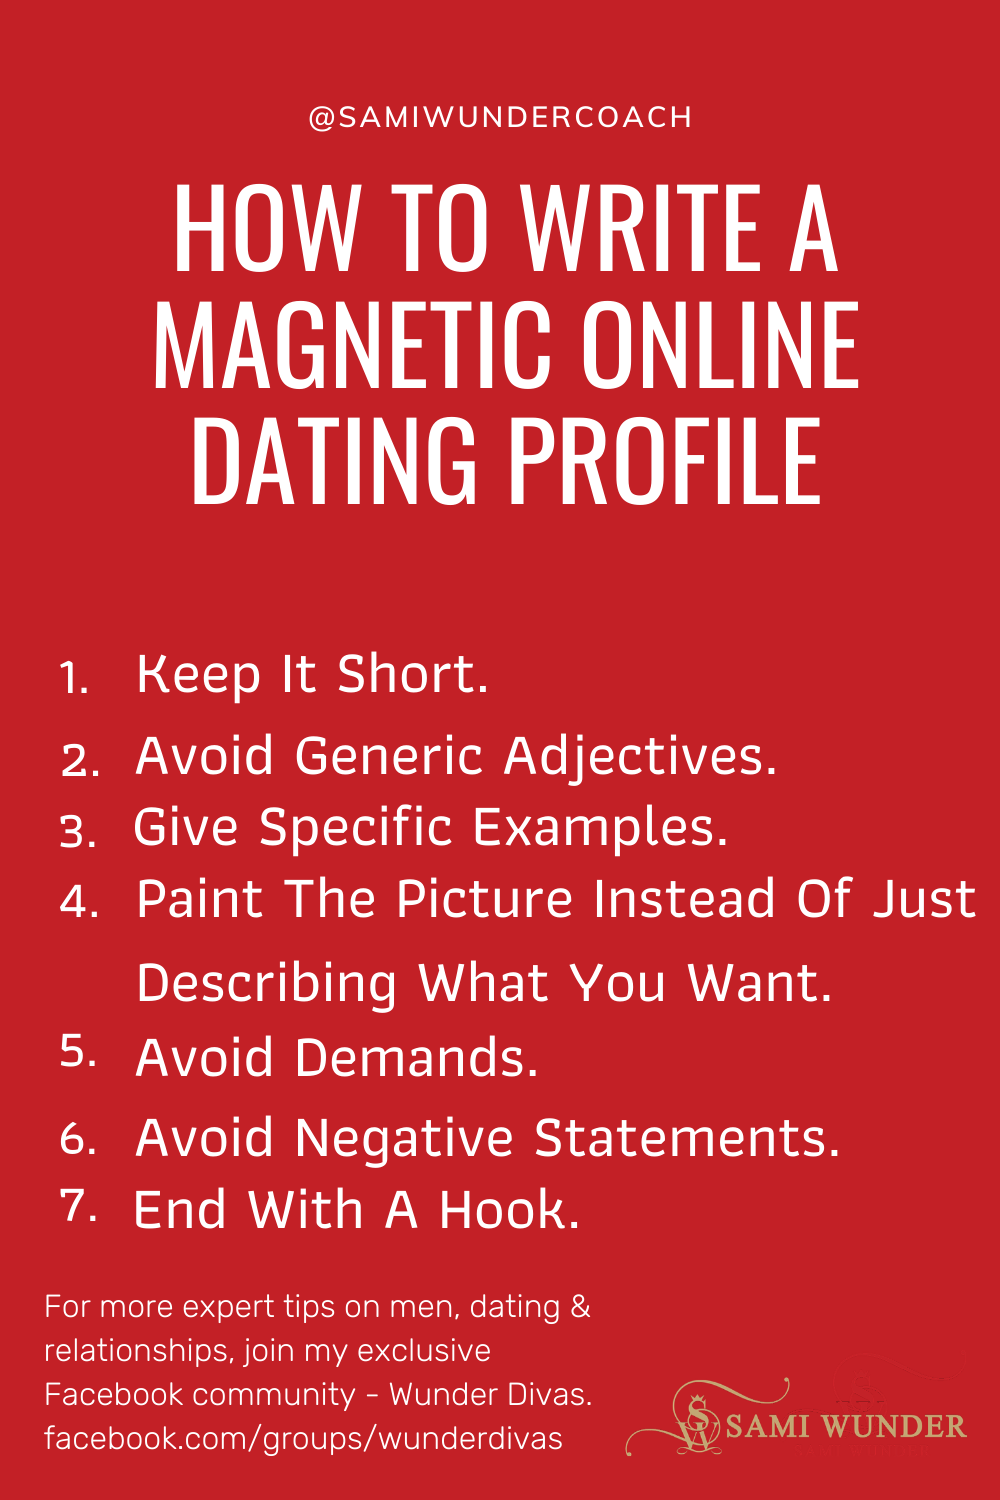 How To Write An Online Dating Profile: 24 Expert Tips To Stand Out